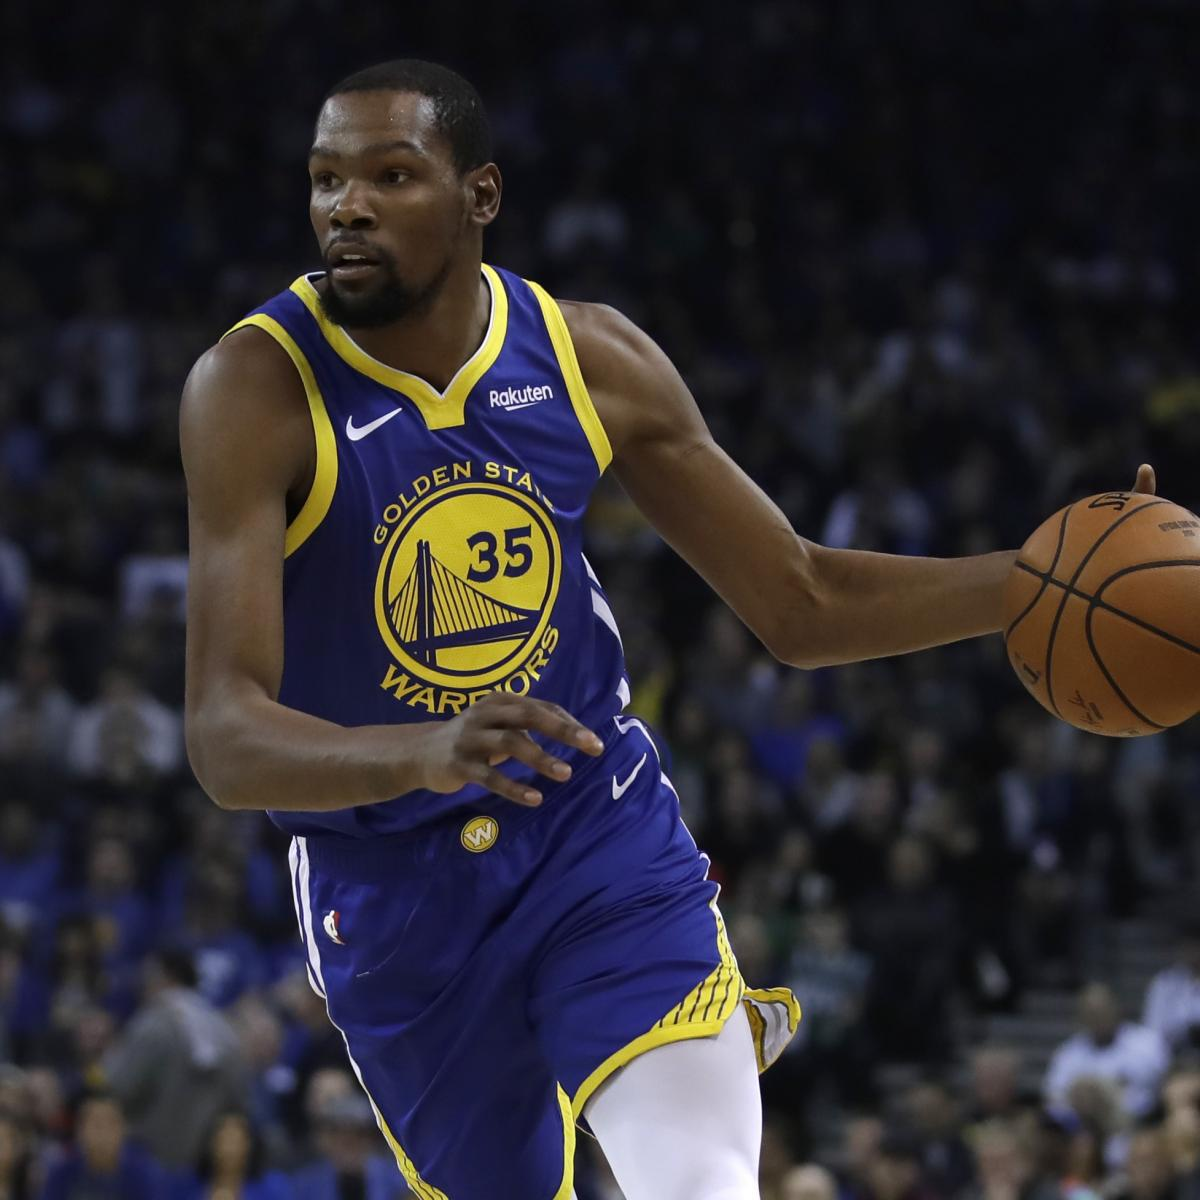 Warriors Come Out To Play Bleacher Report: Kevin Durant Rumors: Some Within Warriors Think Star Has